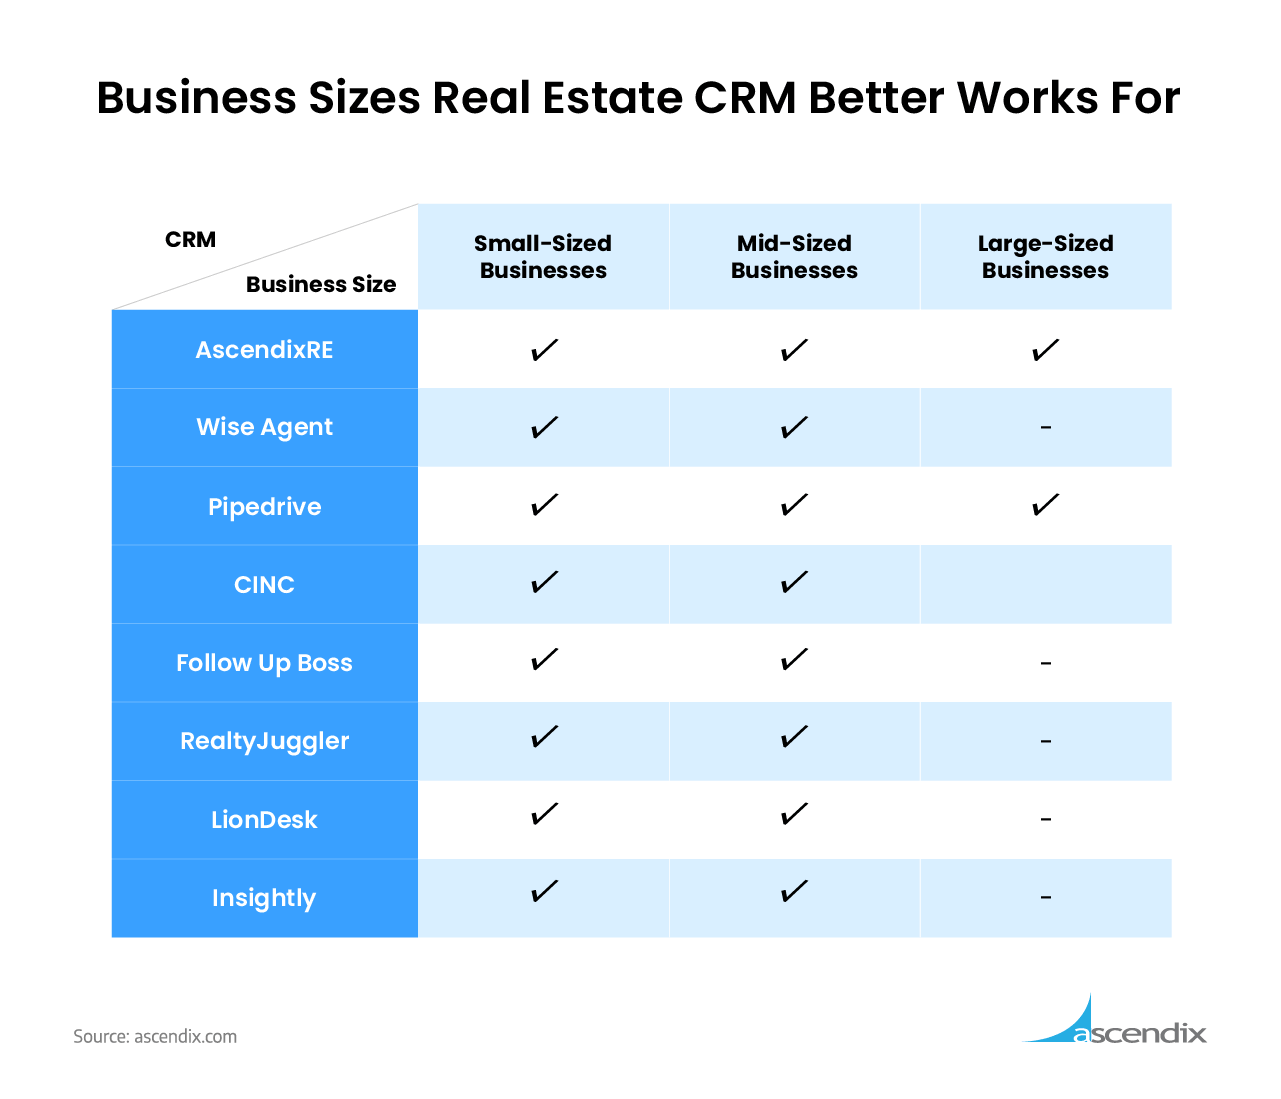 Business-Sizes-Real-Estate-CRM-Better-Works-for